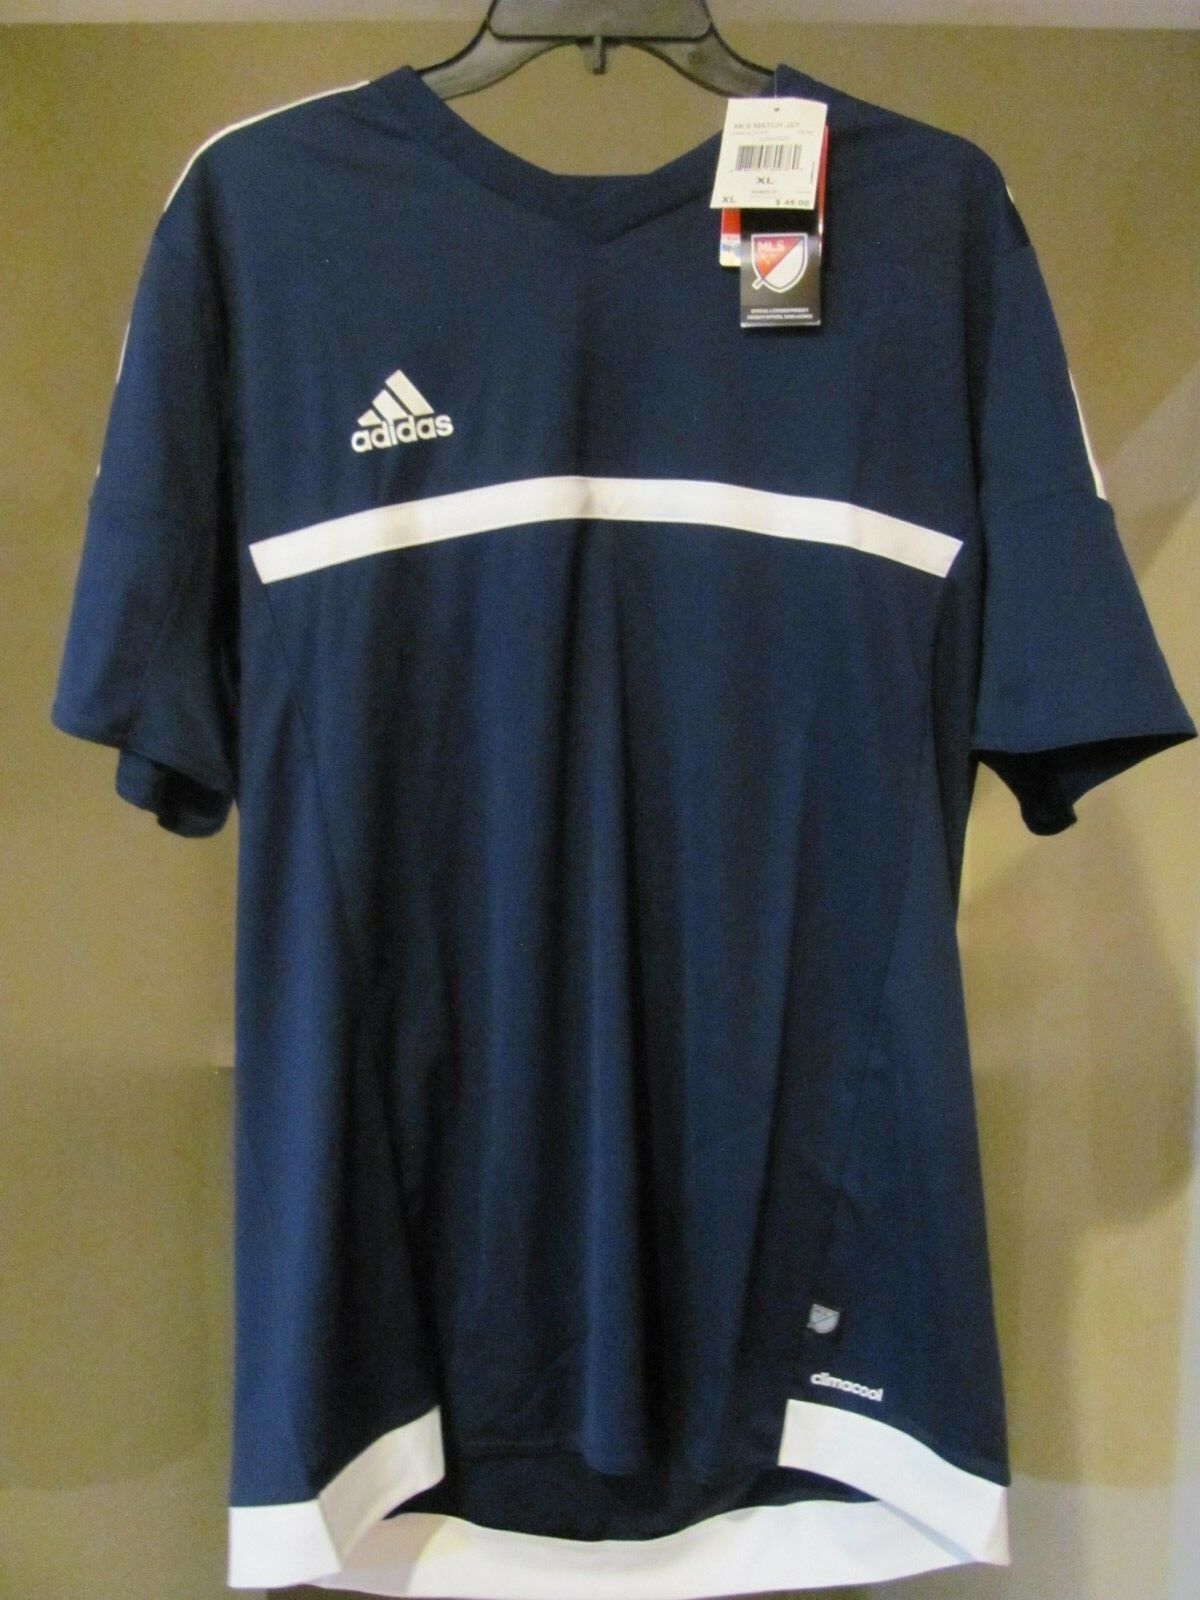 Adidas MLS Match Jersey Soccer Futbol Football Size XL Navy bluee